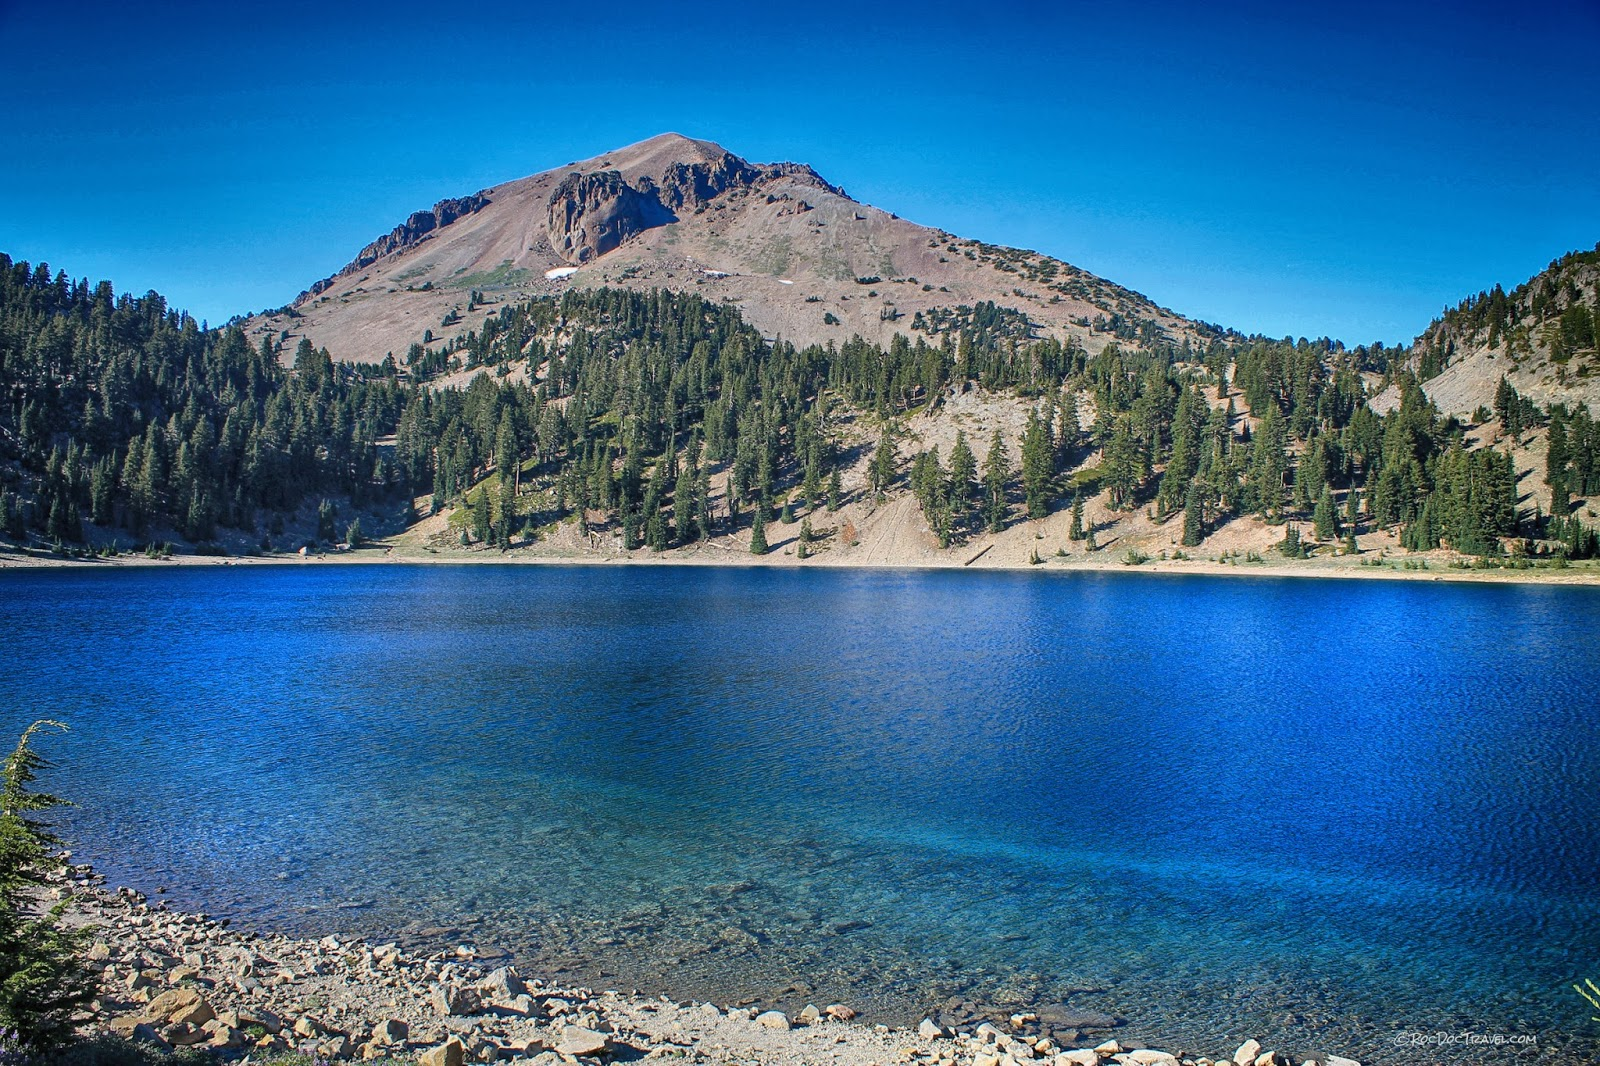 lassen national park wallpaper - photo #21